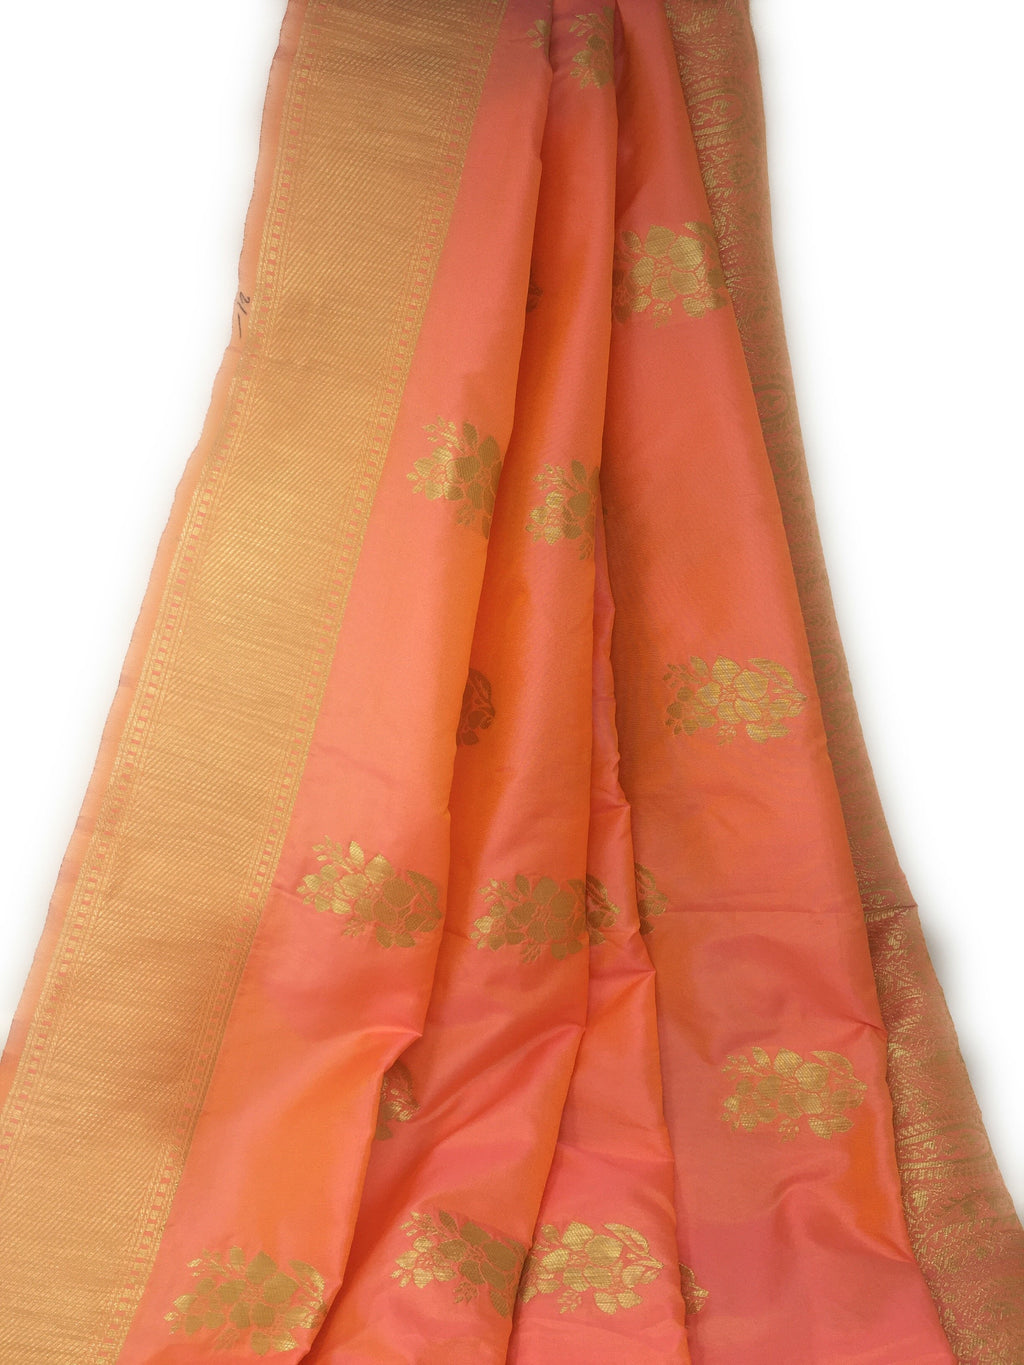 Brocade Fabric In Pink Peach And Gold